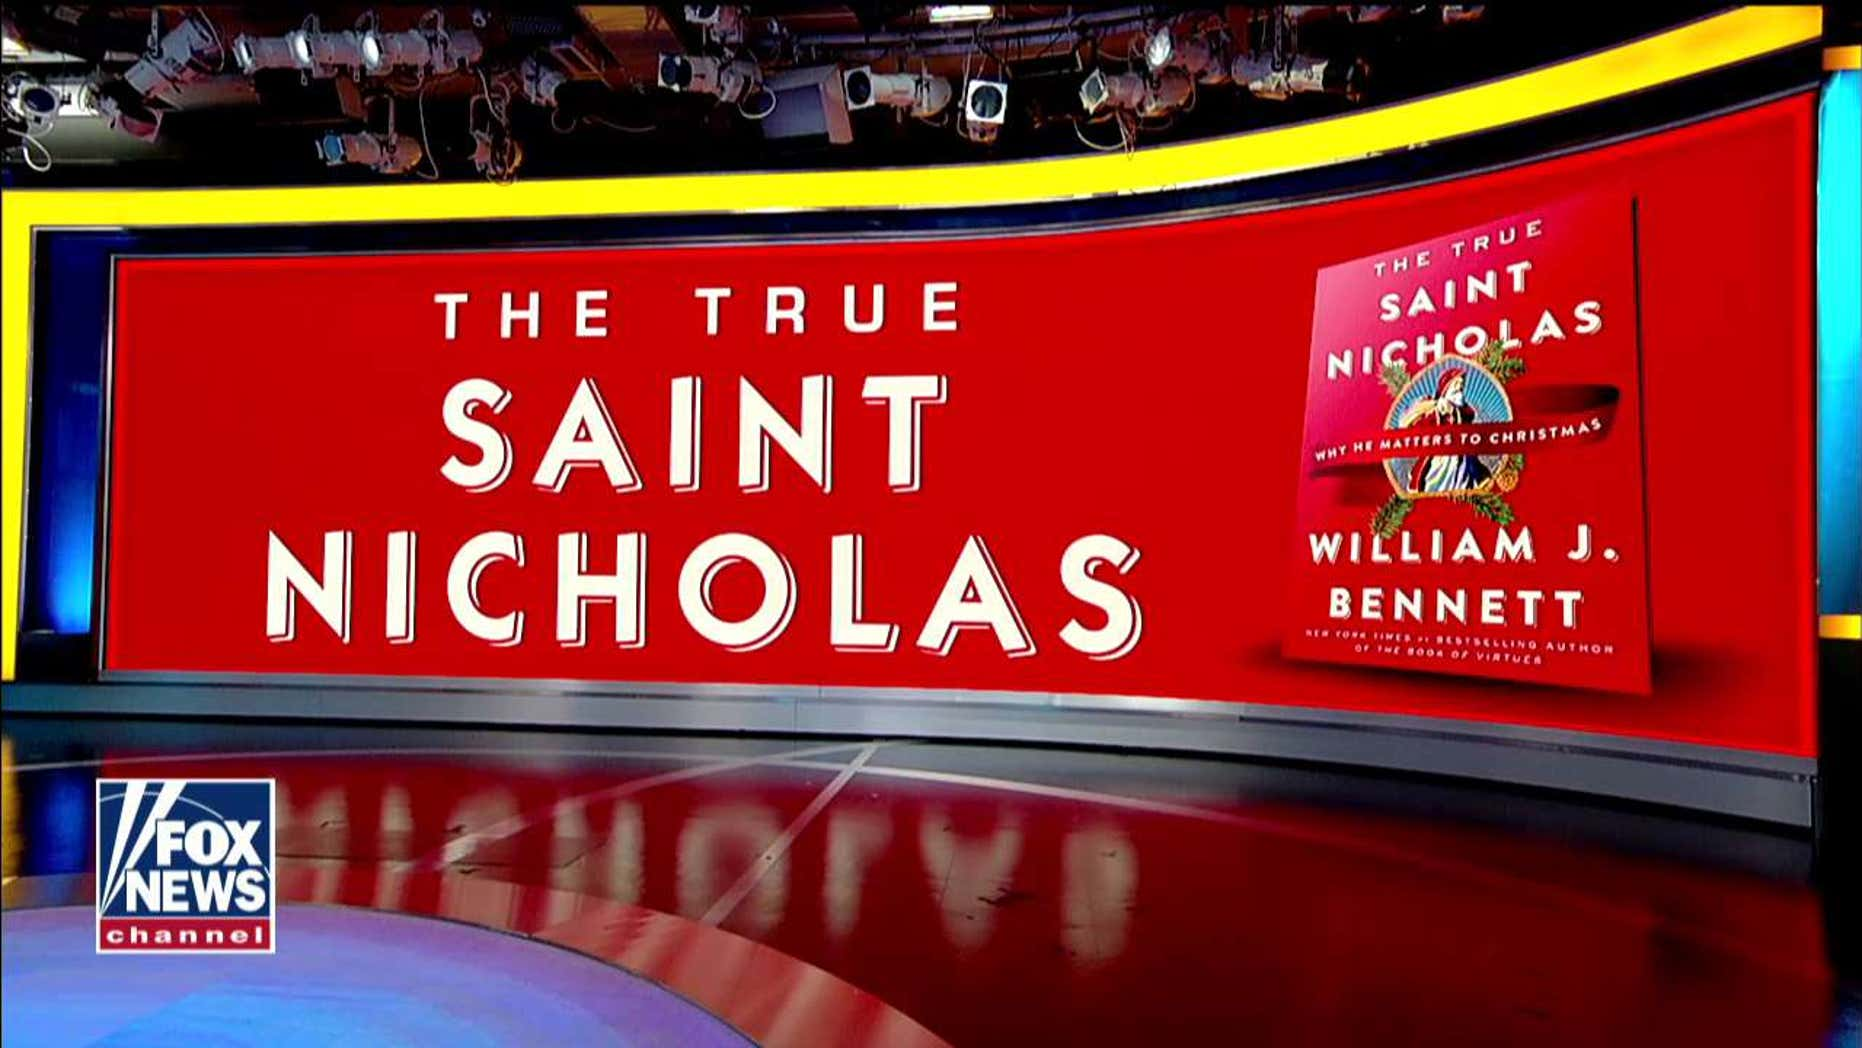 7Fox News contributor Bill Bennett is the author of 'The True Saint Nicholas: Why He Matters to Christmas'